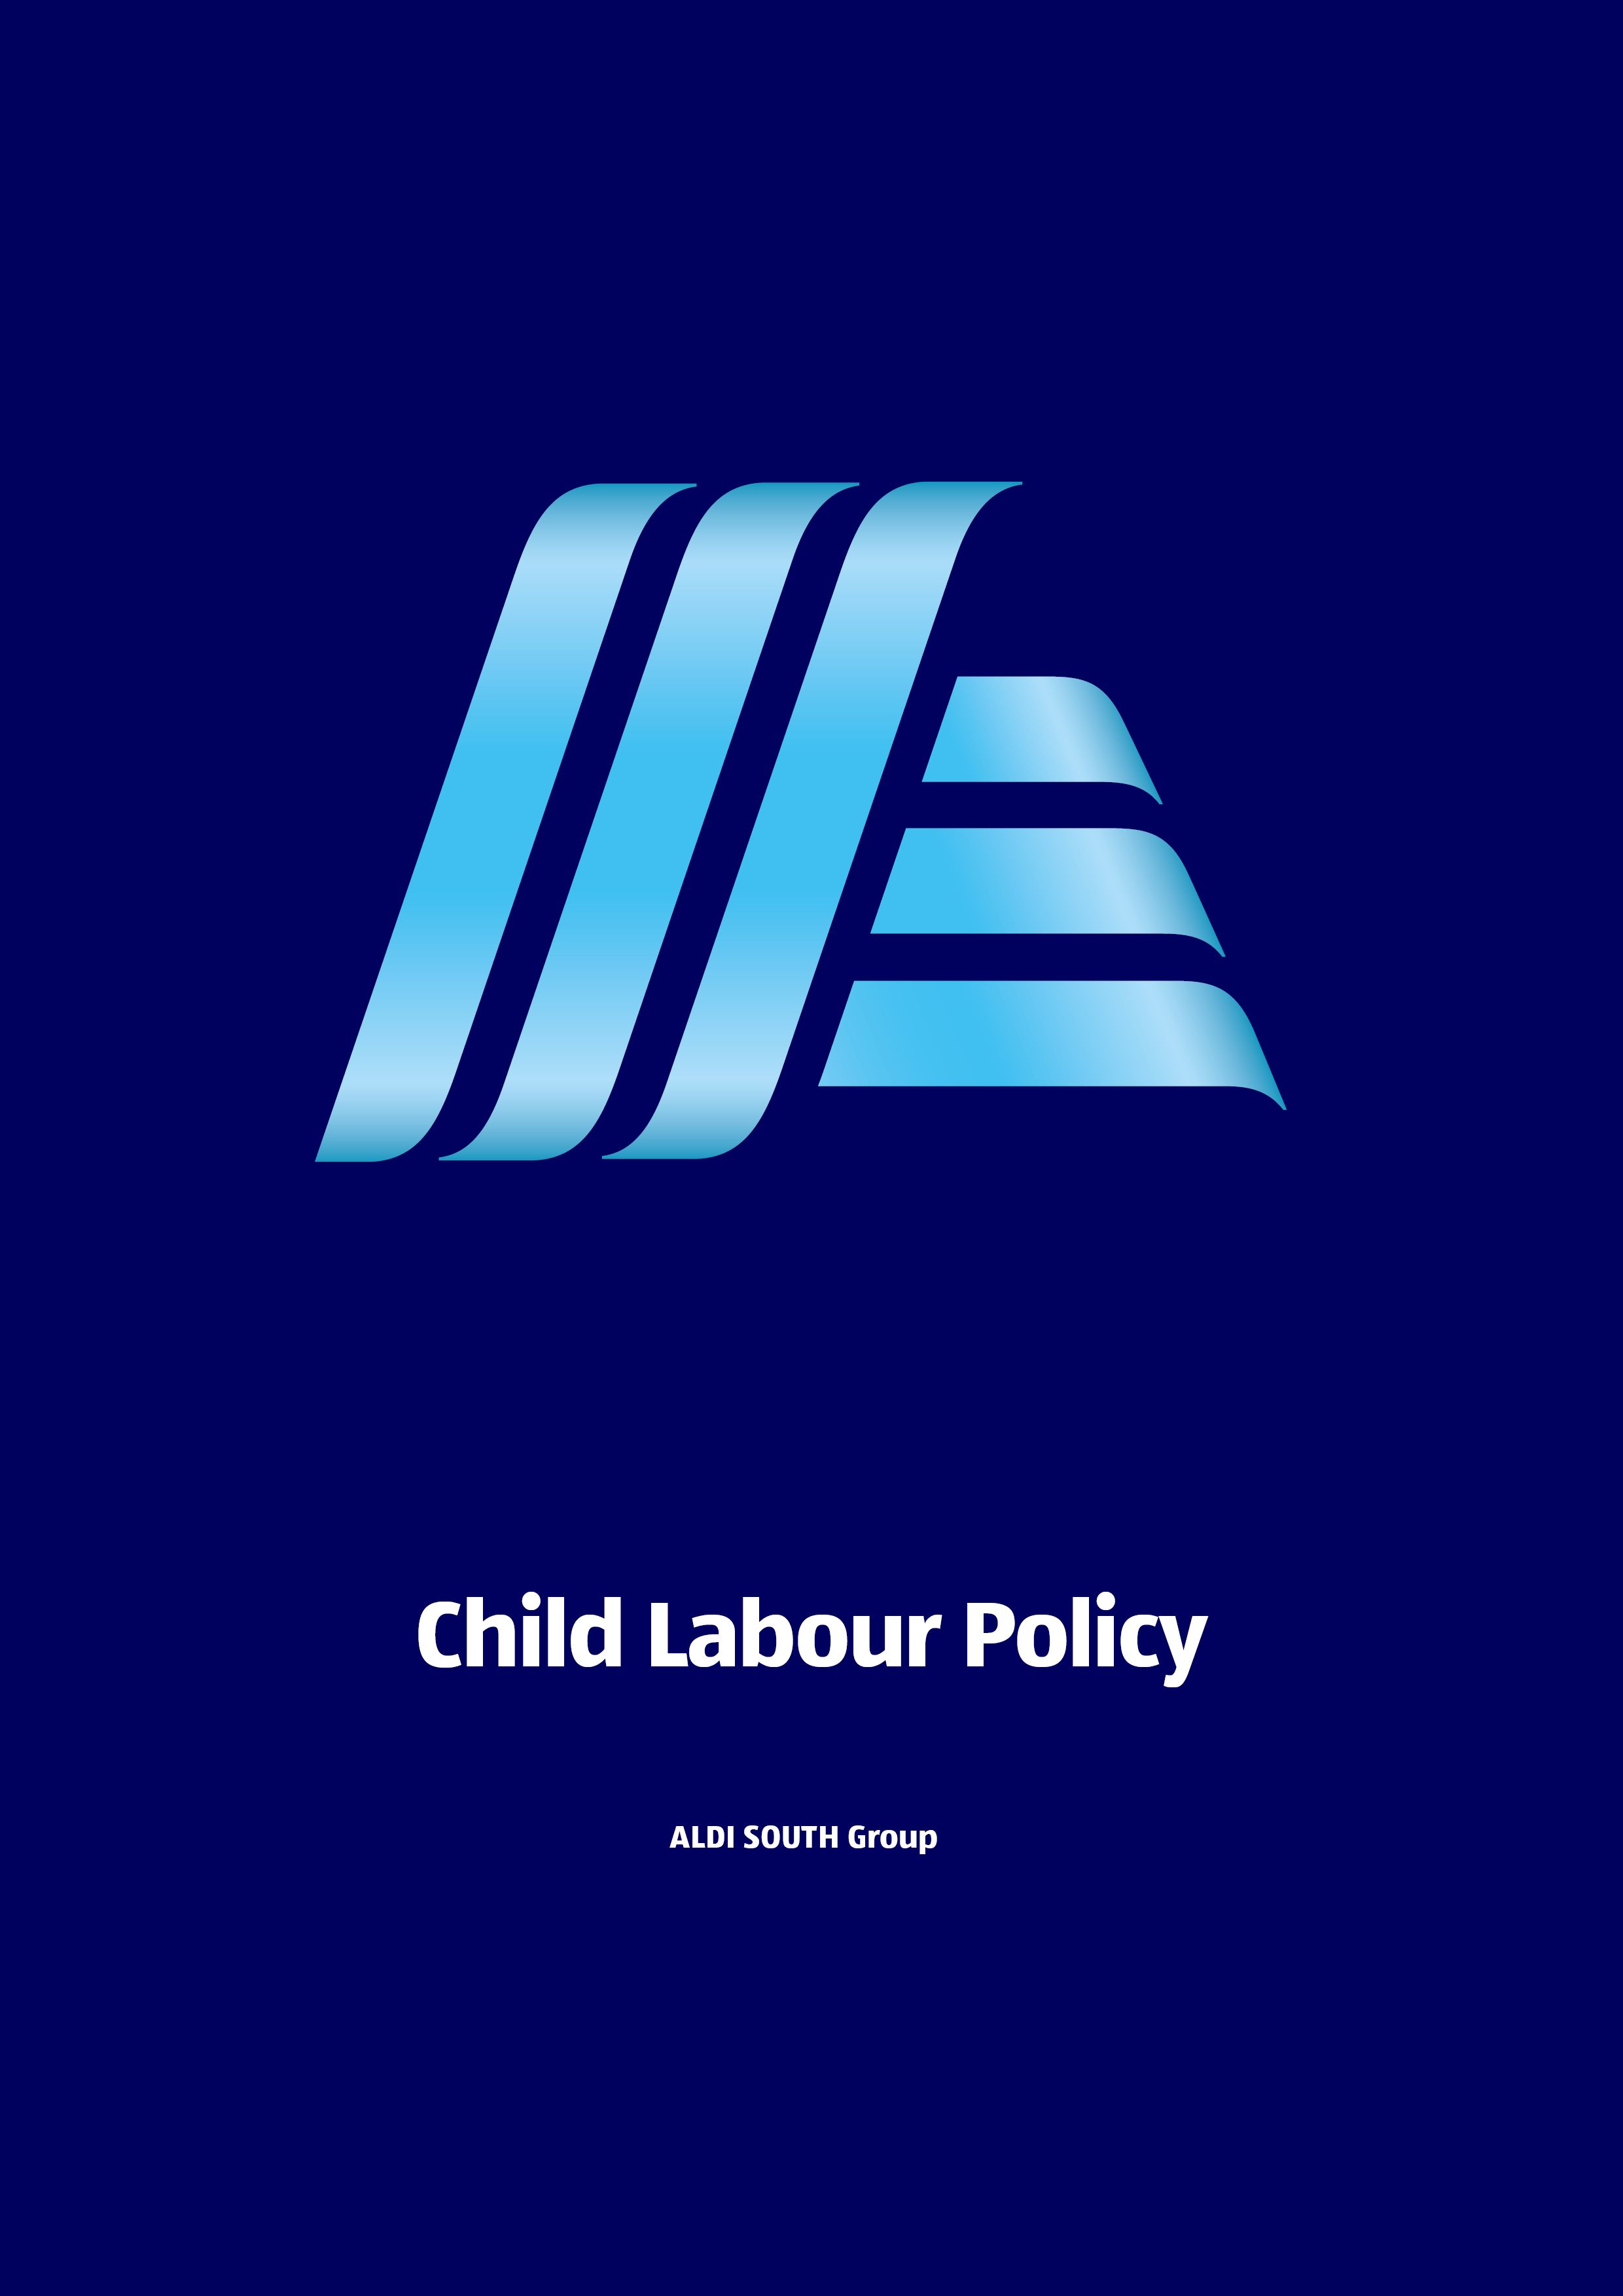 ALDI Child Labour Policy